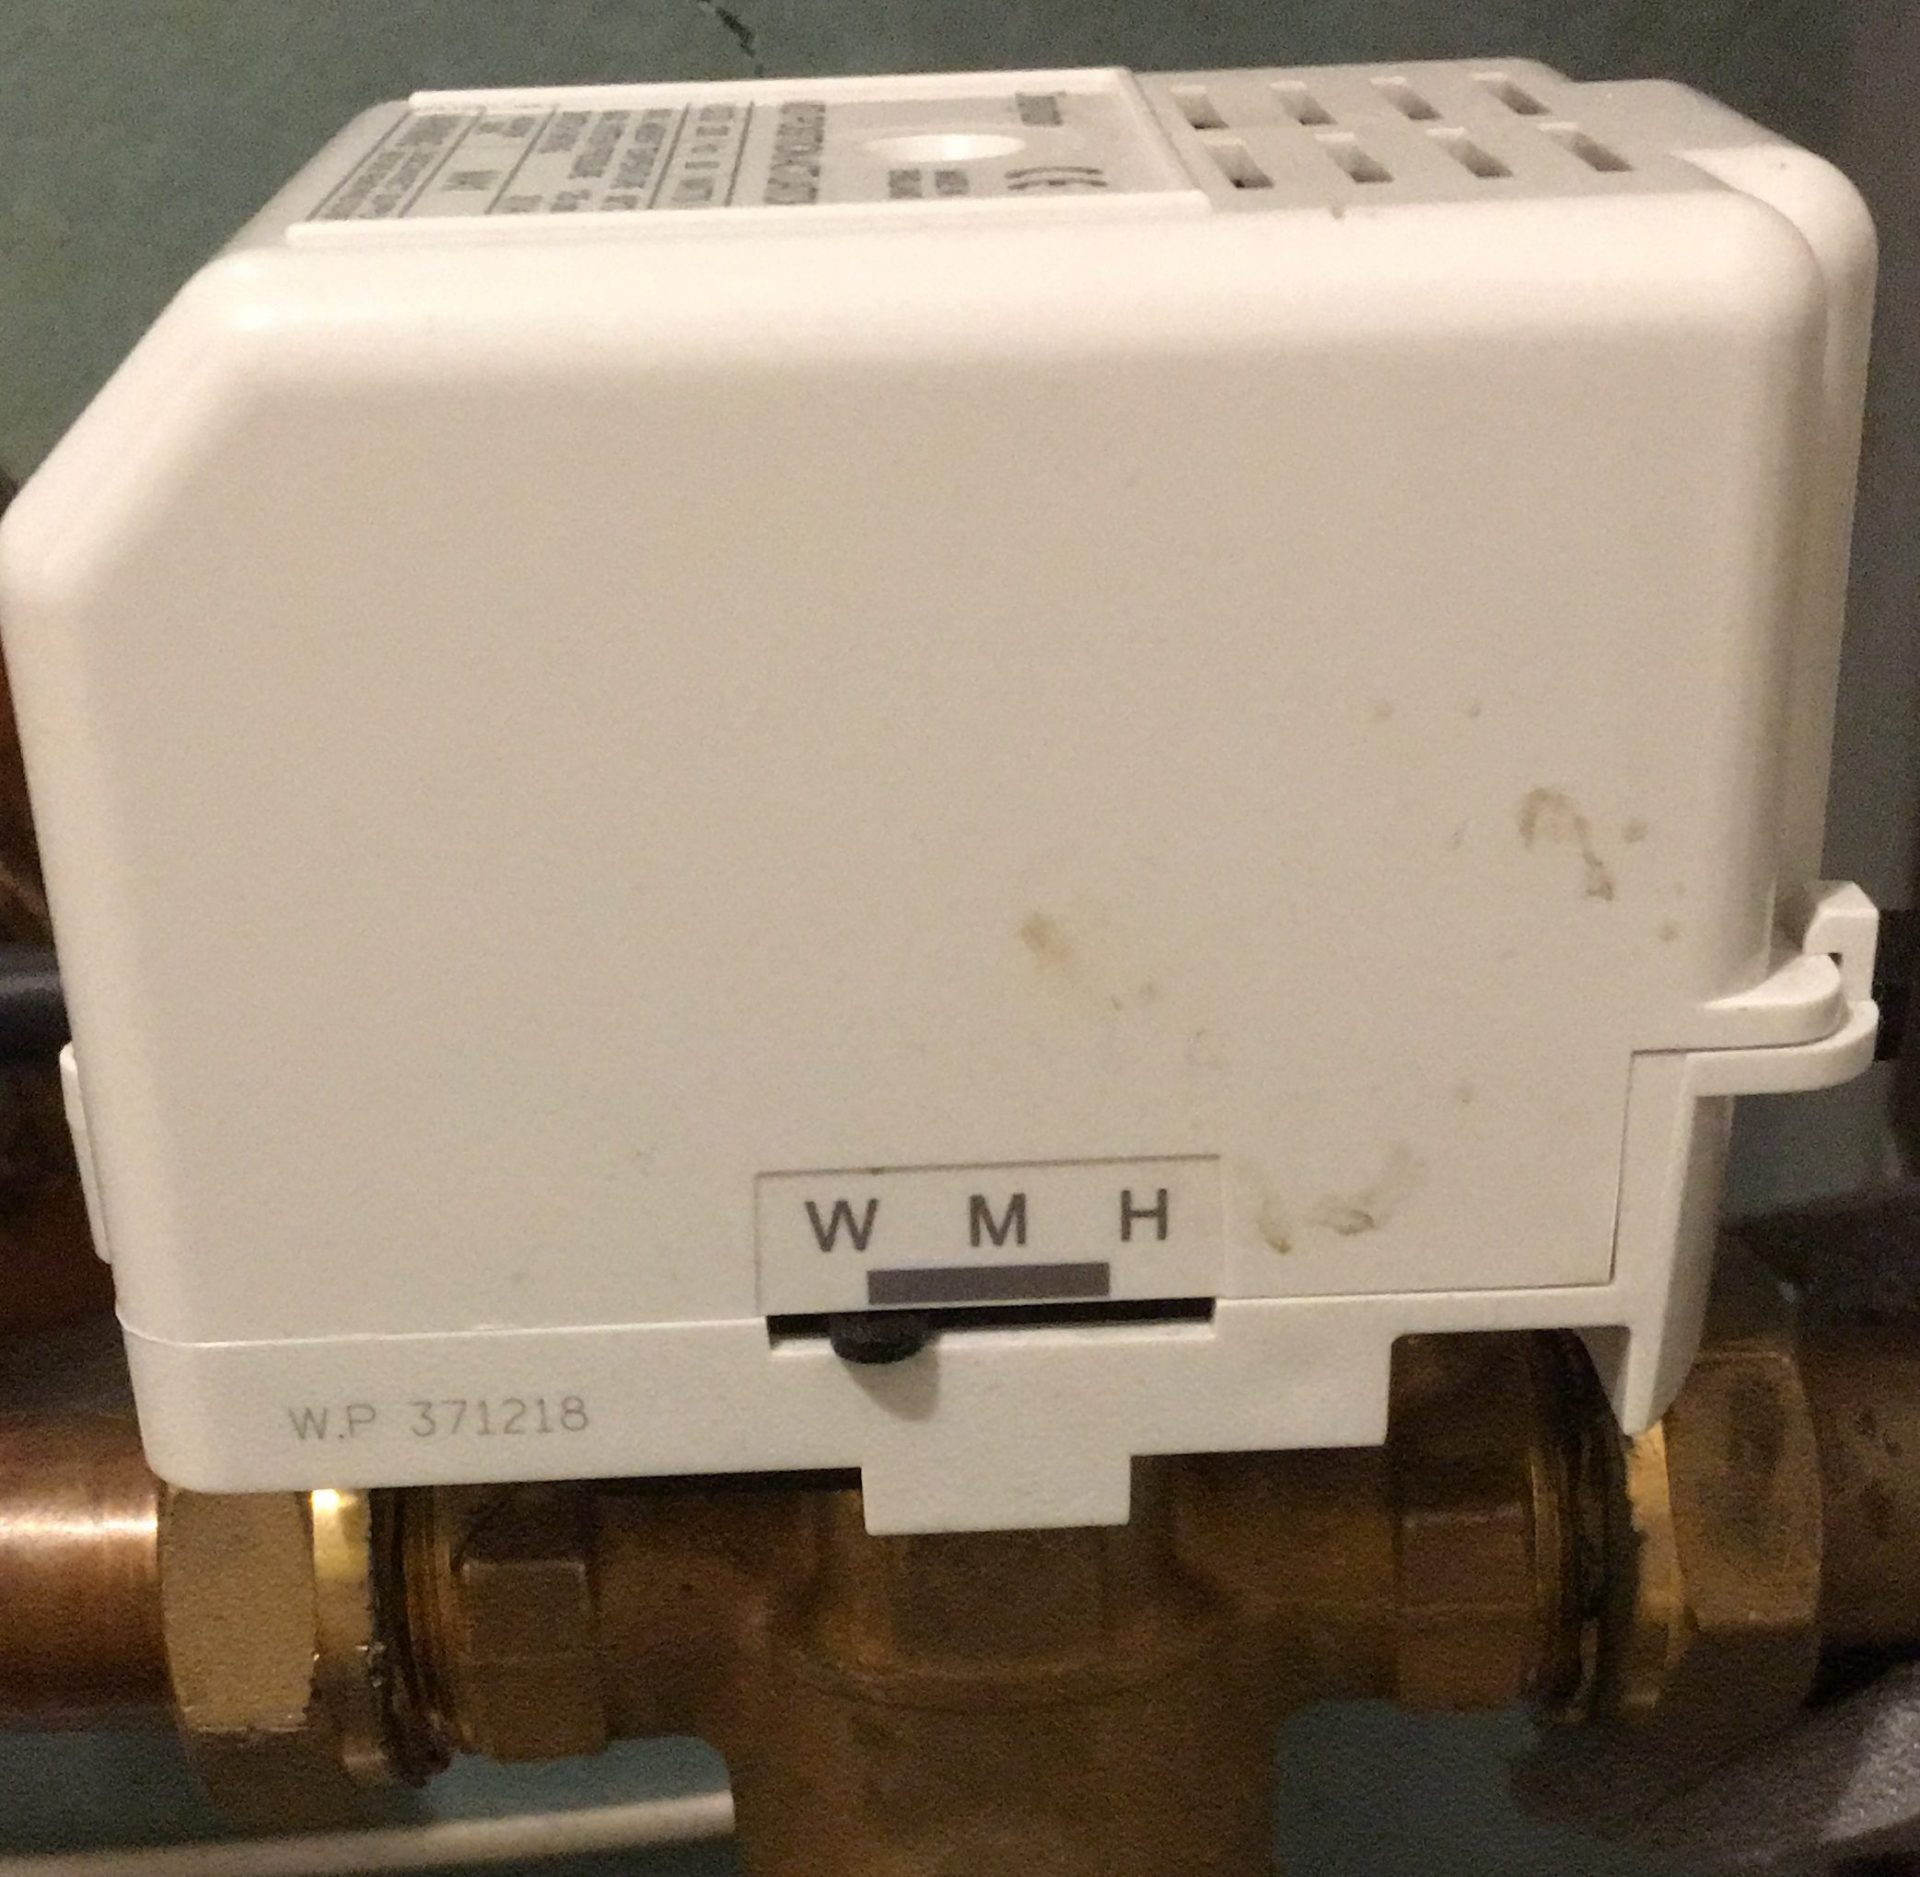 Nest thermostat hot water test